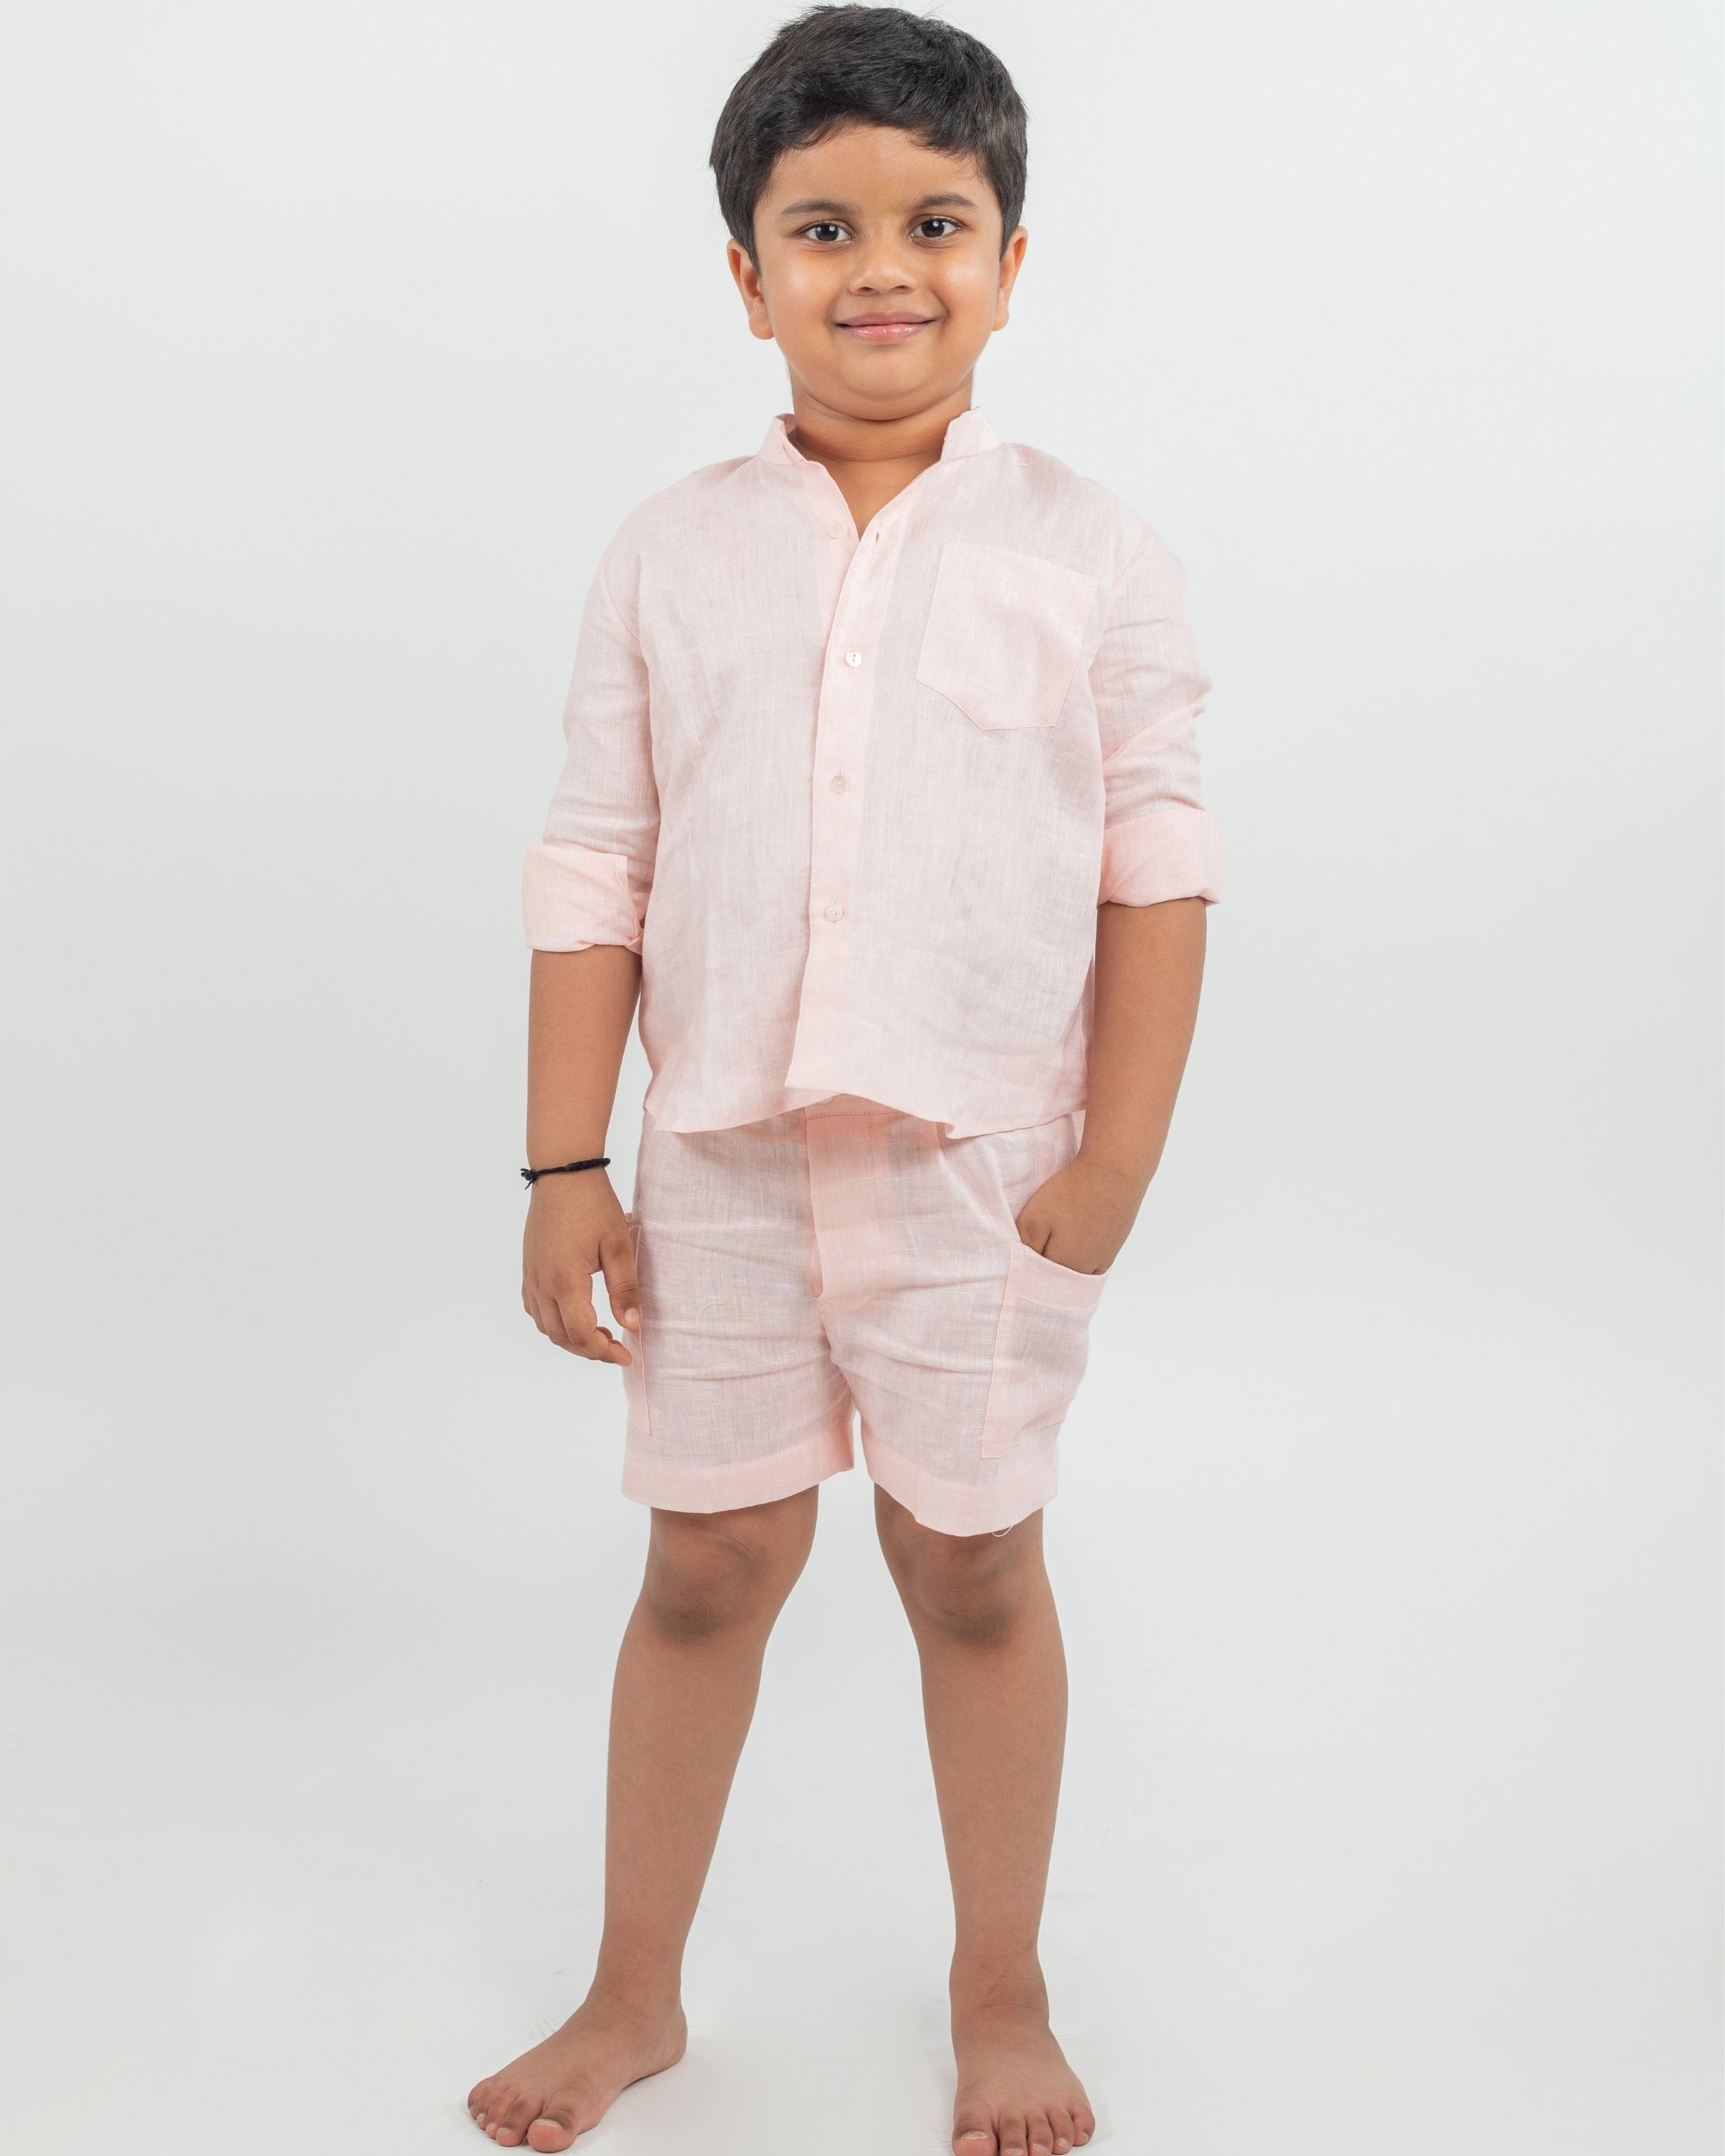 Peach linen shirt and shorts - set of two